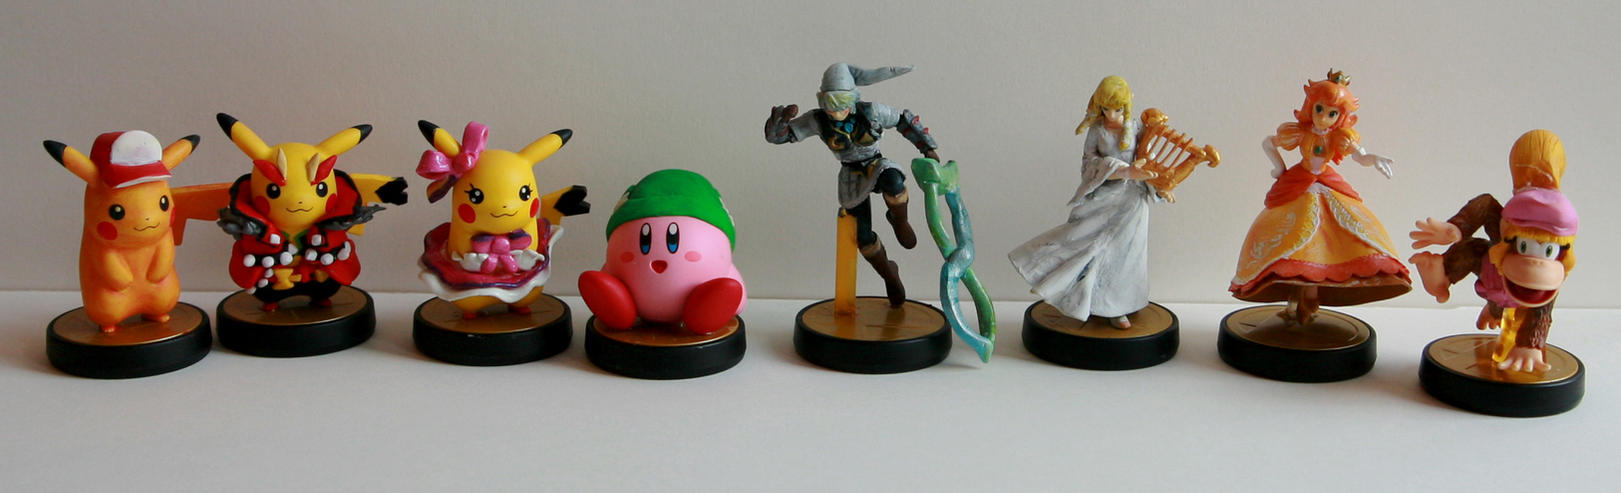 Second Batch of Amiibos! by alltheApples